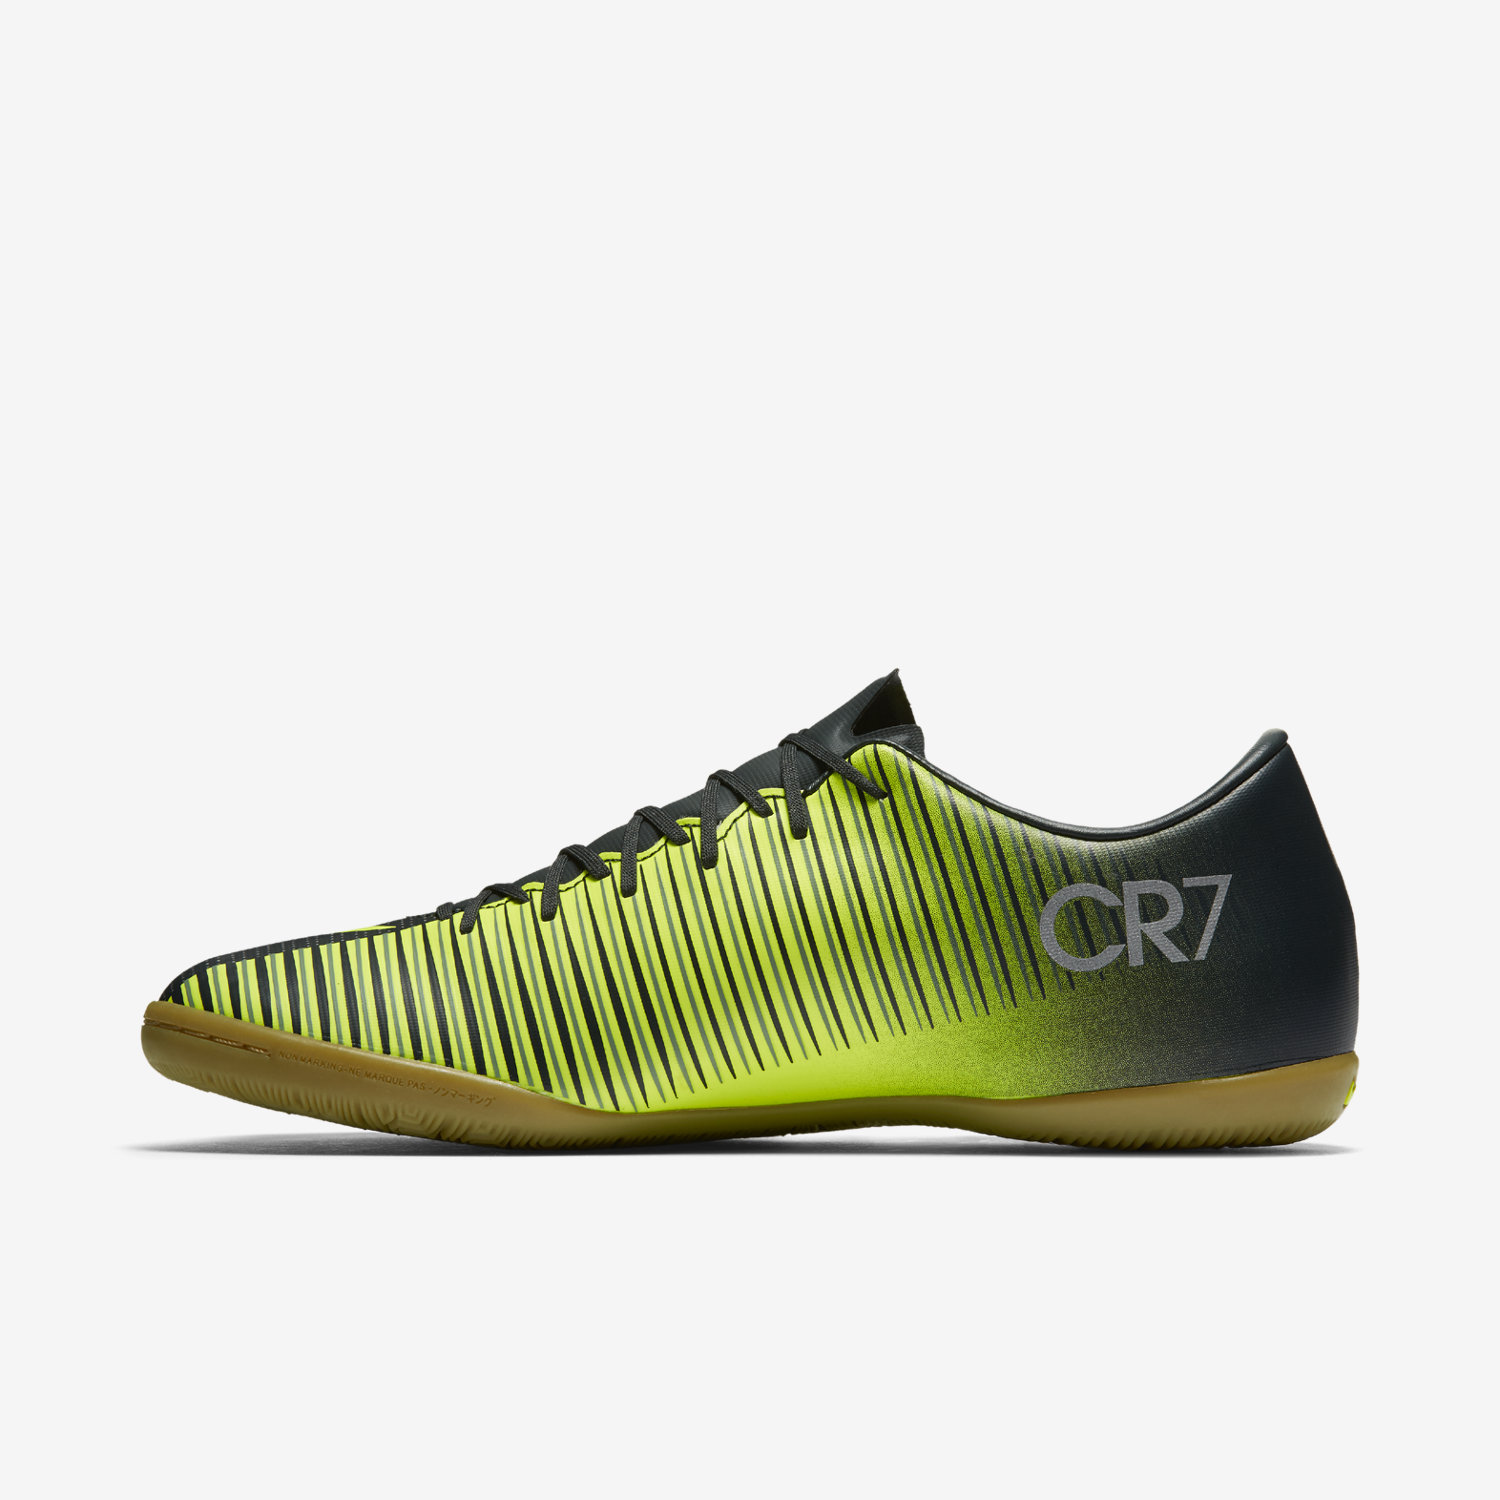 chaussures foot salle nike cr7. Black Bedroom Furniture Sets. Home Design Ideas